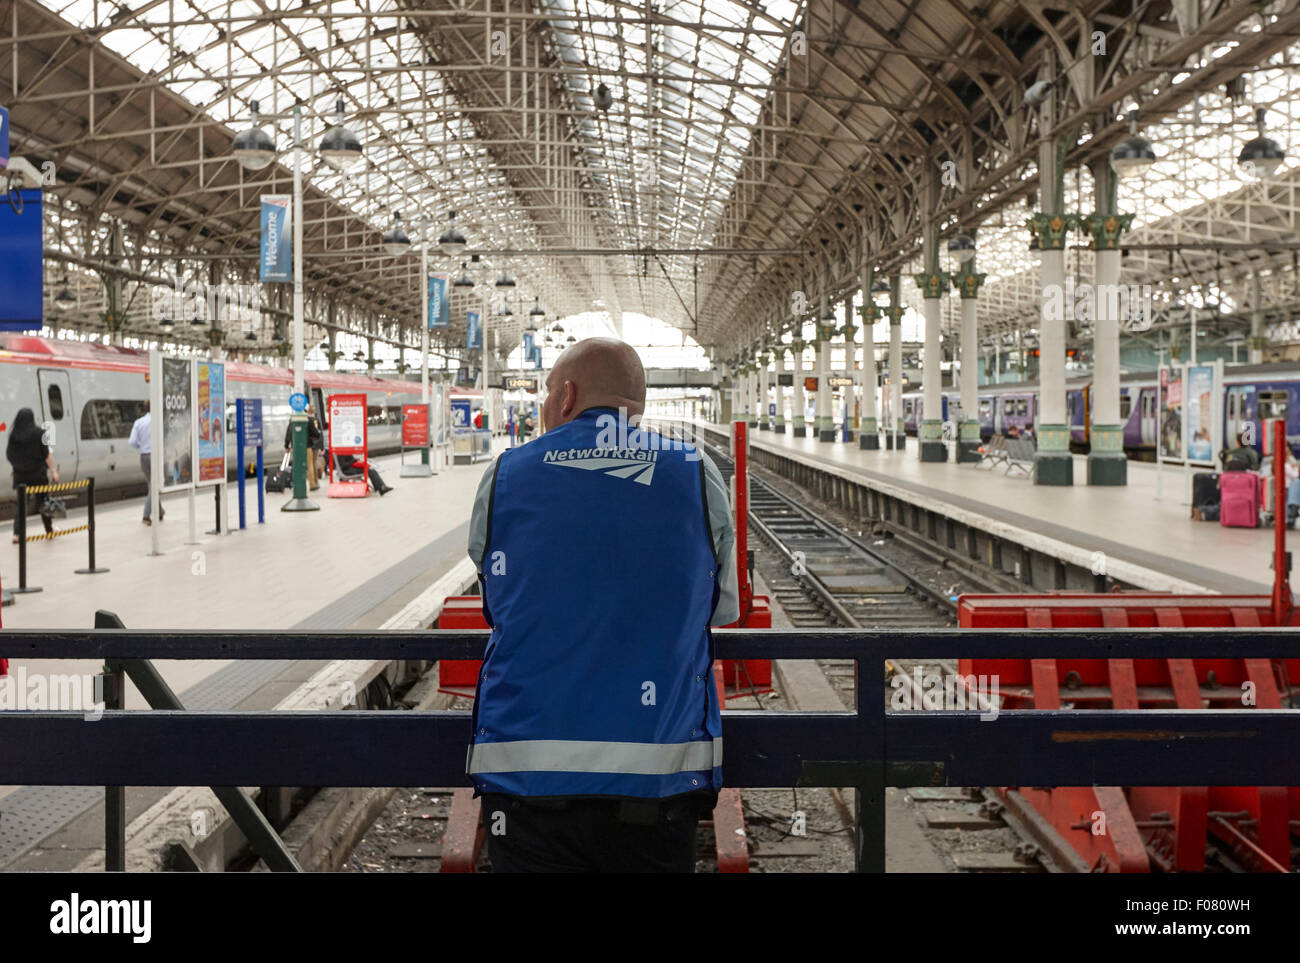 network rail staff member at Piccadilly train station Manchester UK - Stock Image